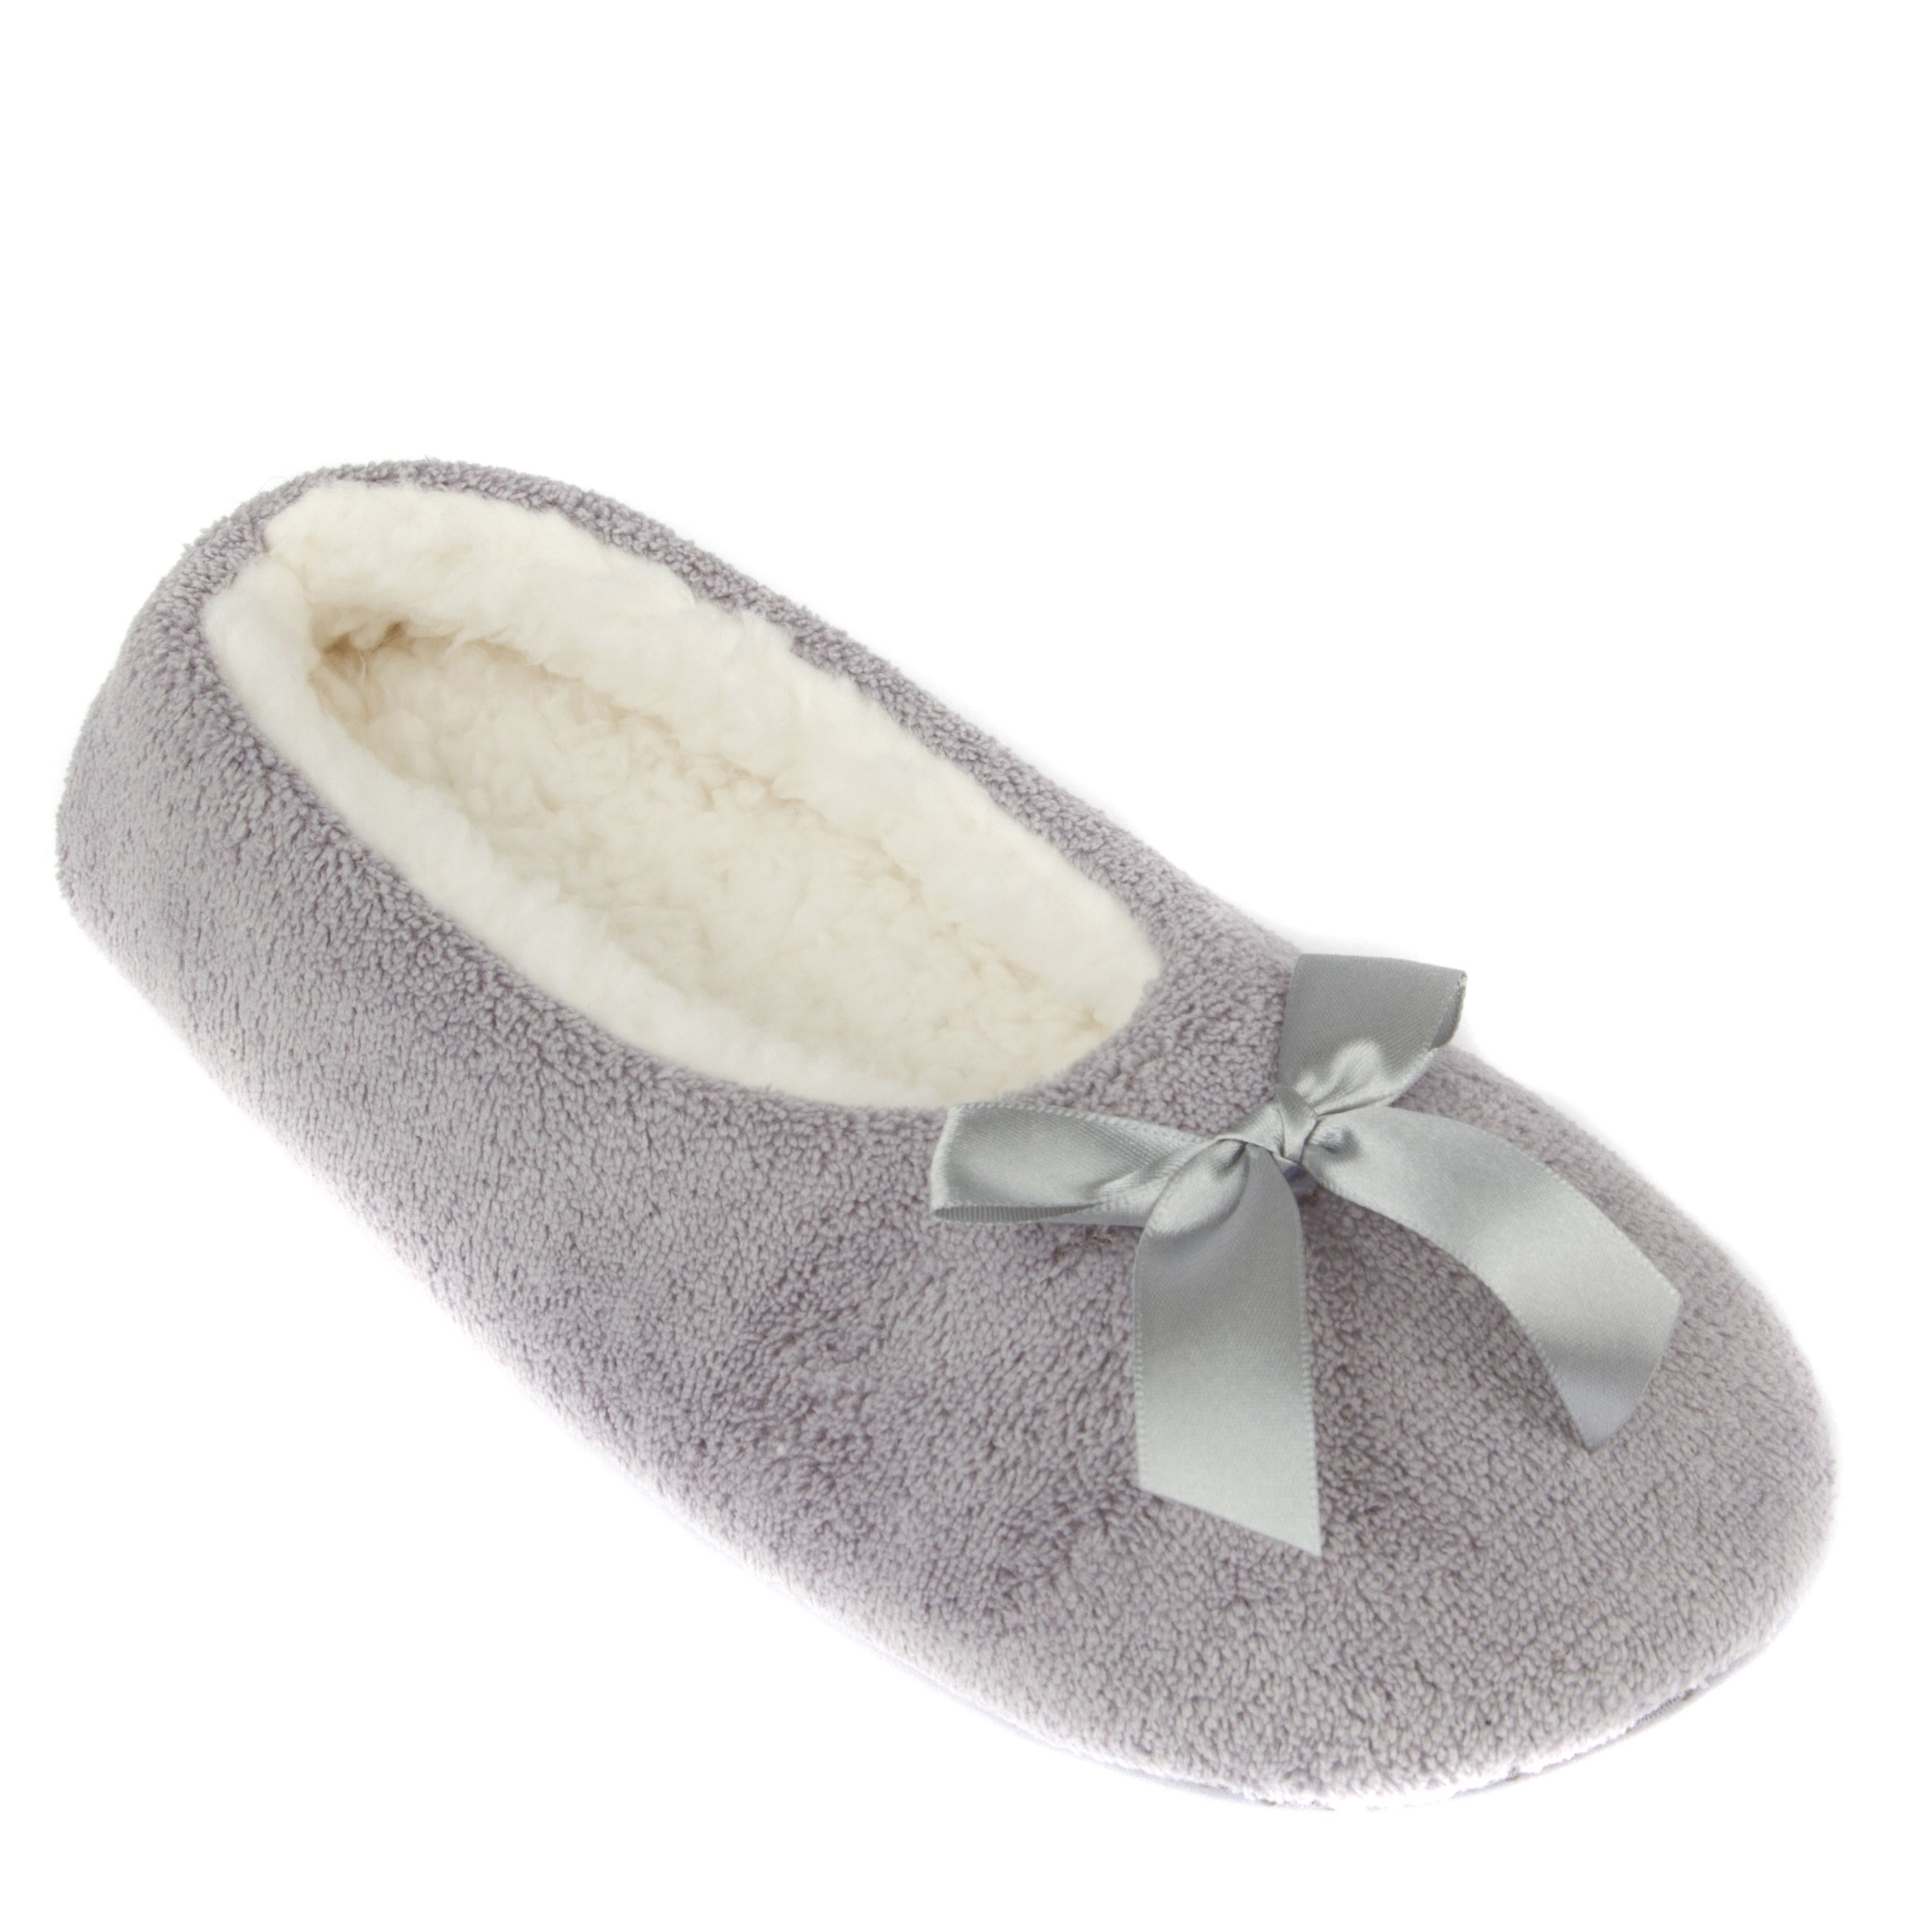 baaef93c960a Leisureland Women s Fleece Lined Cozy Slippers Solid Color by Leisureland